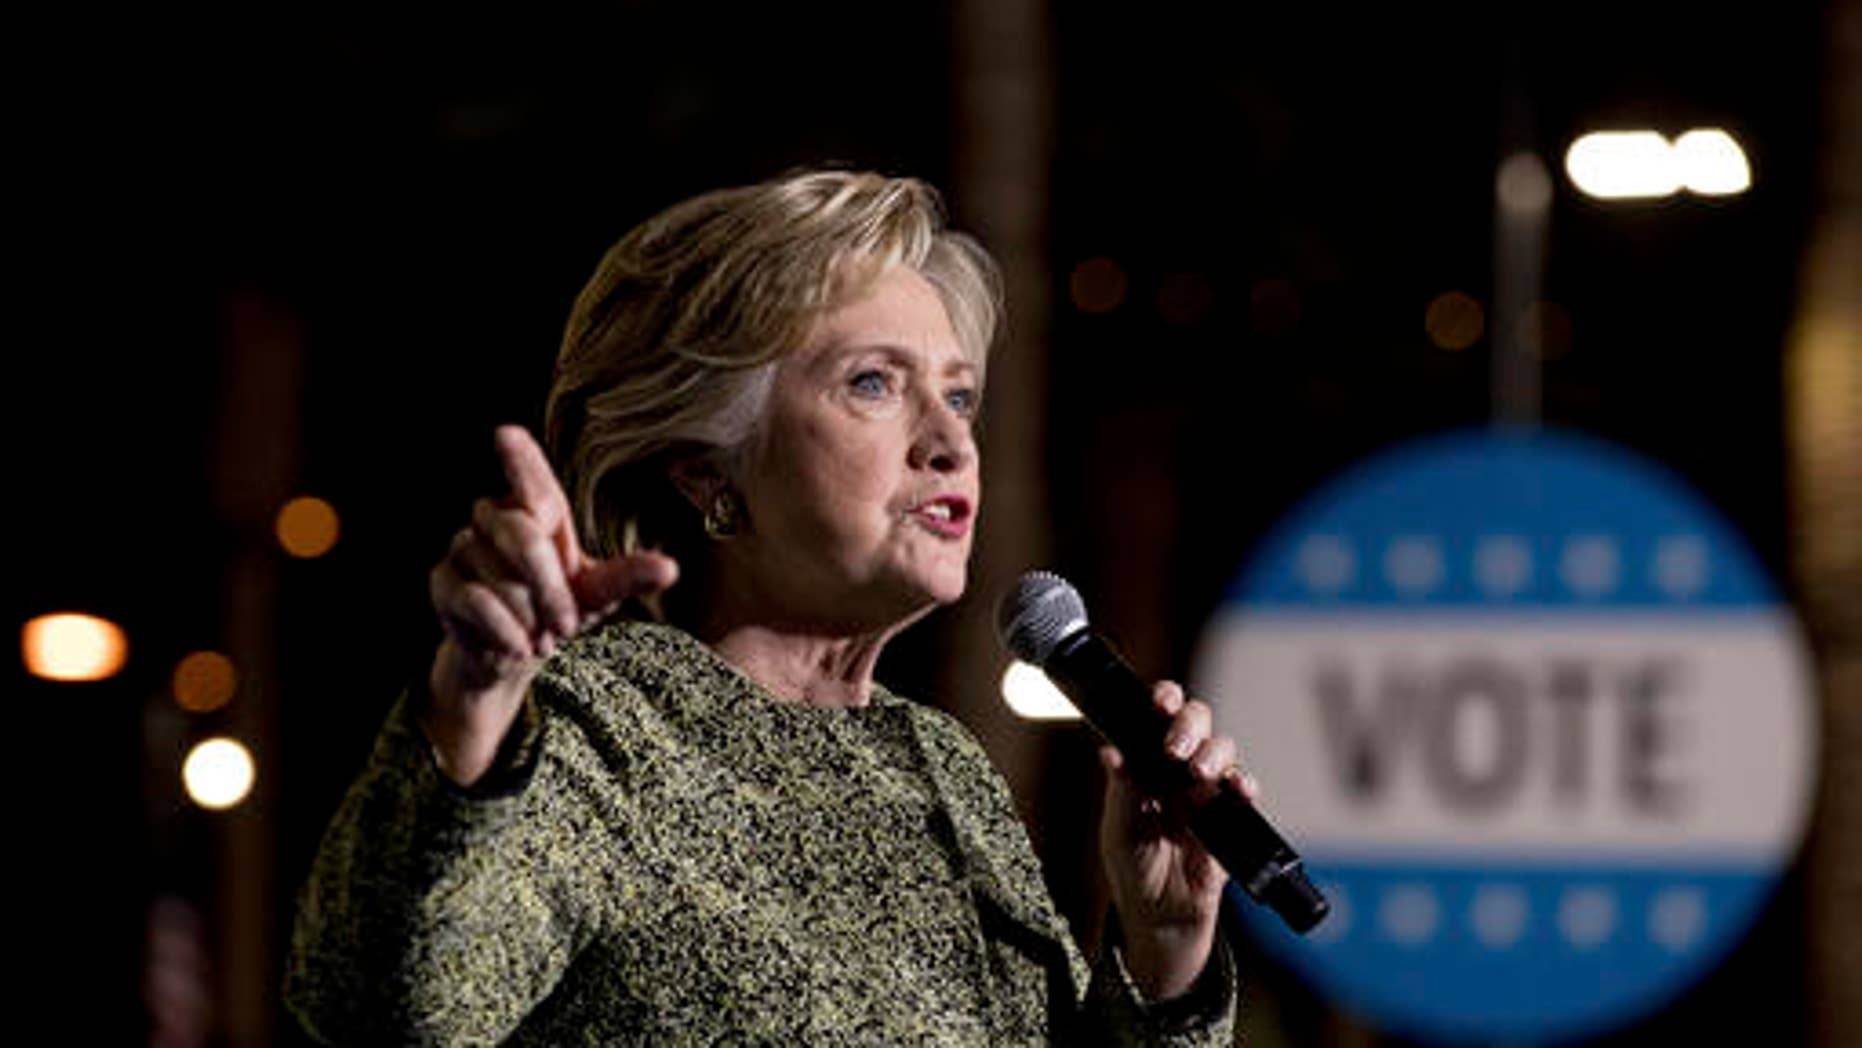 Democratic presidential candidate Hillary Clinton speaks at a rally at the Smith Center for the Performing Arts in Las Vegas, Wednesday, Oct. 12, 2016.